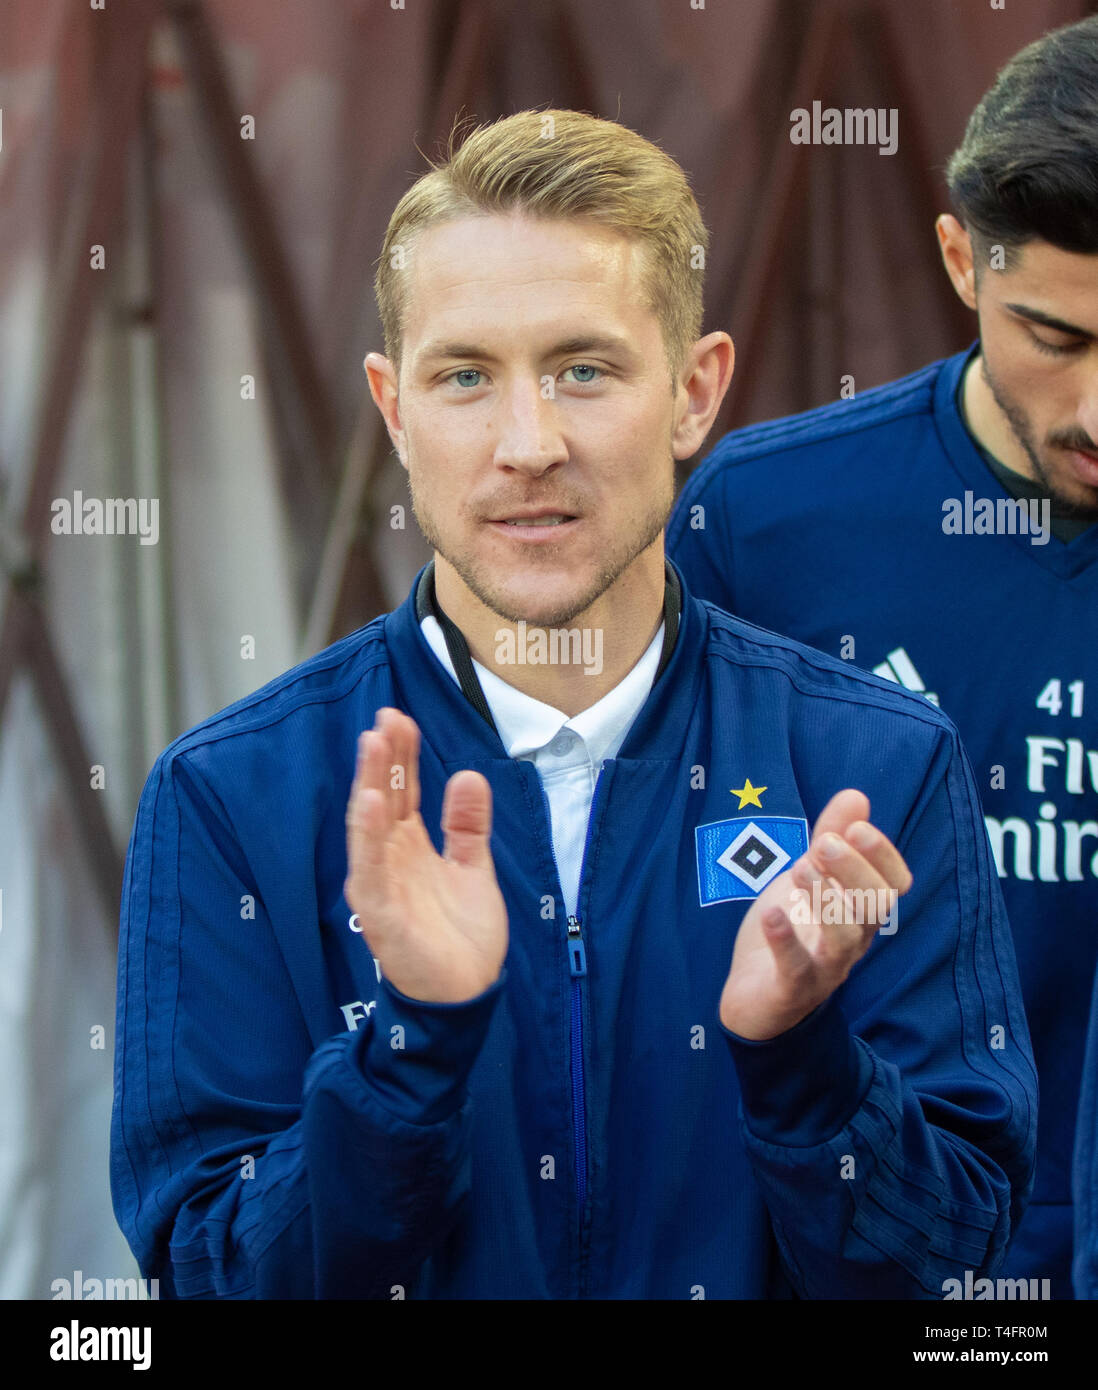 Cologne, Germany April 15 2019, football 2nd league, 1. FC Koeln vs. Hamburger SV: Lewis Holtby (HSV) claps his hands. - Stock Image